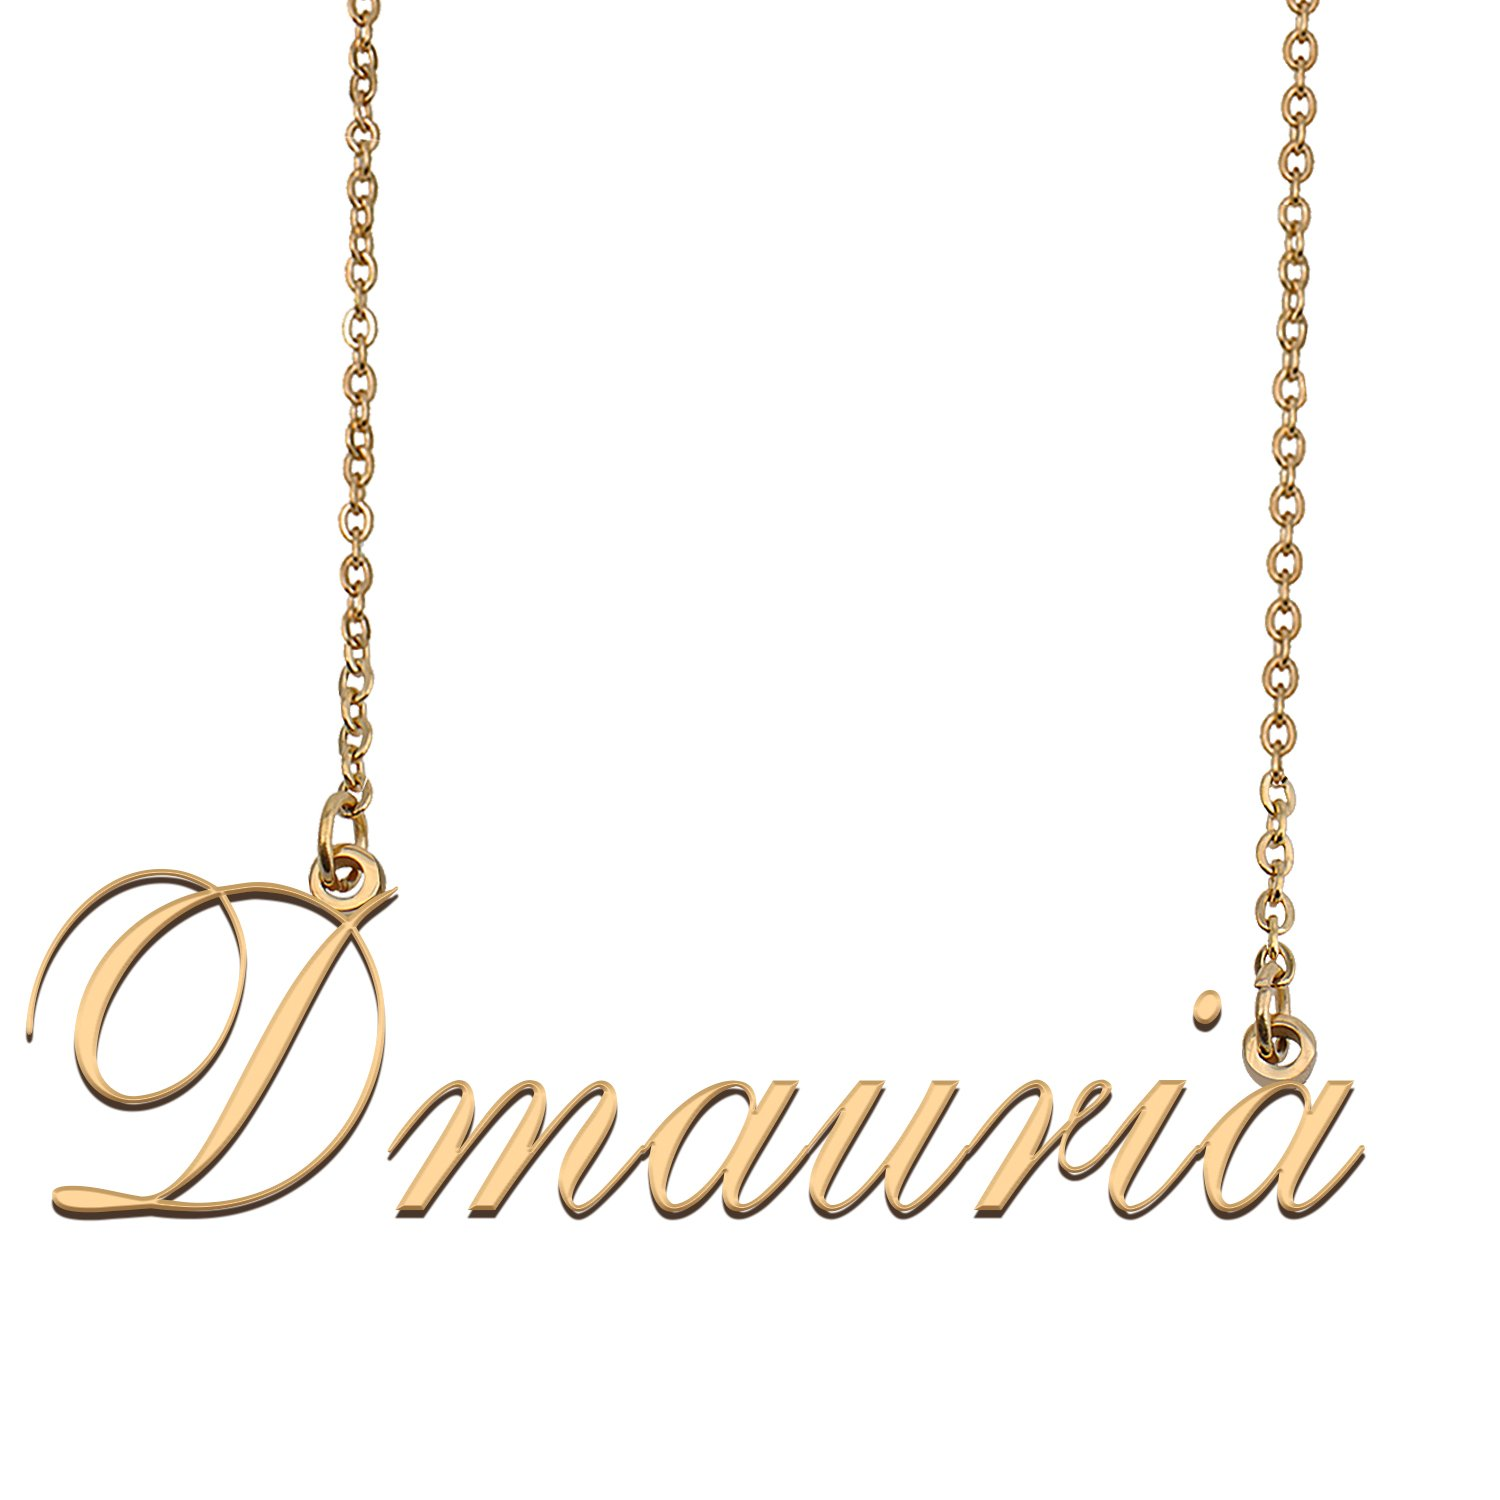 Customized Name Necklace 18K Gold Plated Jewelry Gift for Girlfriend for Her Kahlil